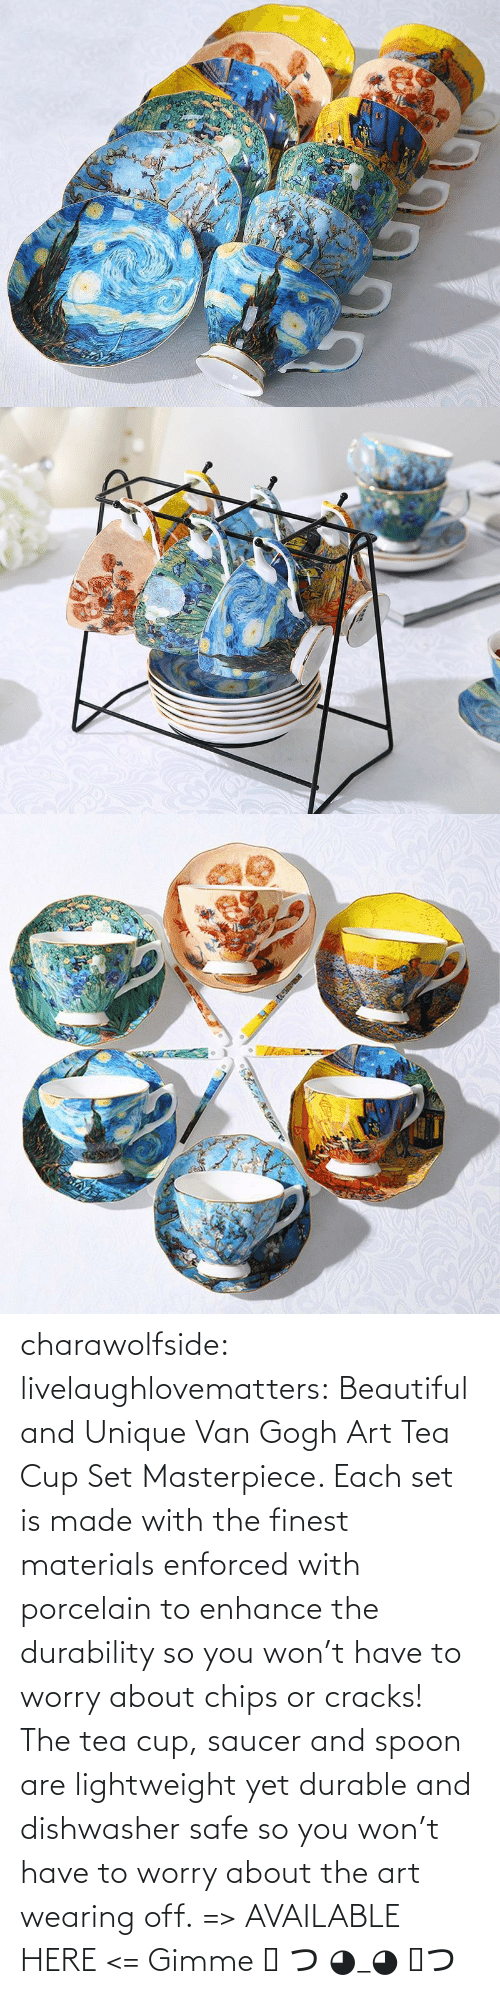 cup: charawolfside:  livelaughlovematters: Beautiful and Unique Van Gogh Art Tea Cup Set Masterpiece. Each set is made with the finest materials enforced with porcelain to enhance the durability so you won't have to worry about chips or cracks! The tea cup, saucer and spoon are lightweight yet durable and dishwasher safe so you won't have to worry about the art wearing off. => AVAILABLE HERE <=    Gimme ༼ つ ◕_◕ ༽つ